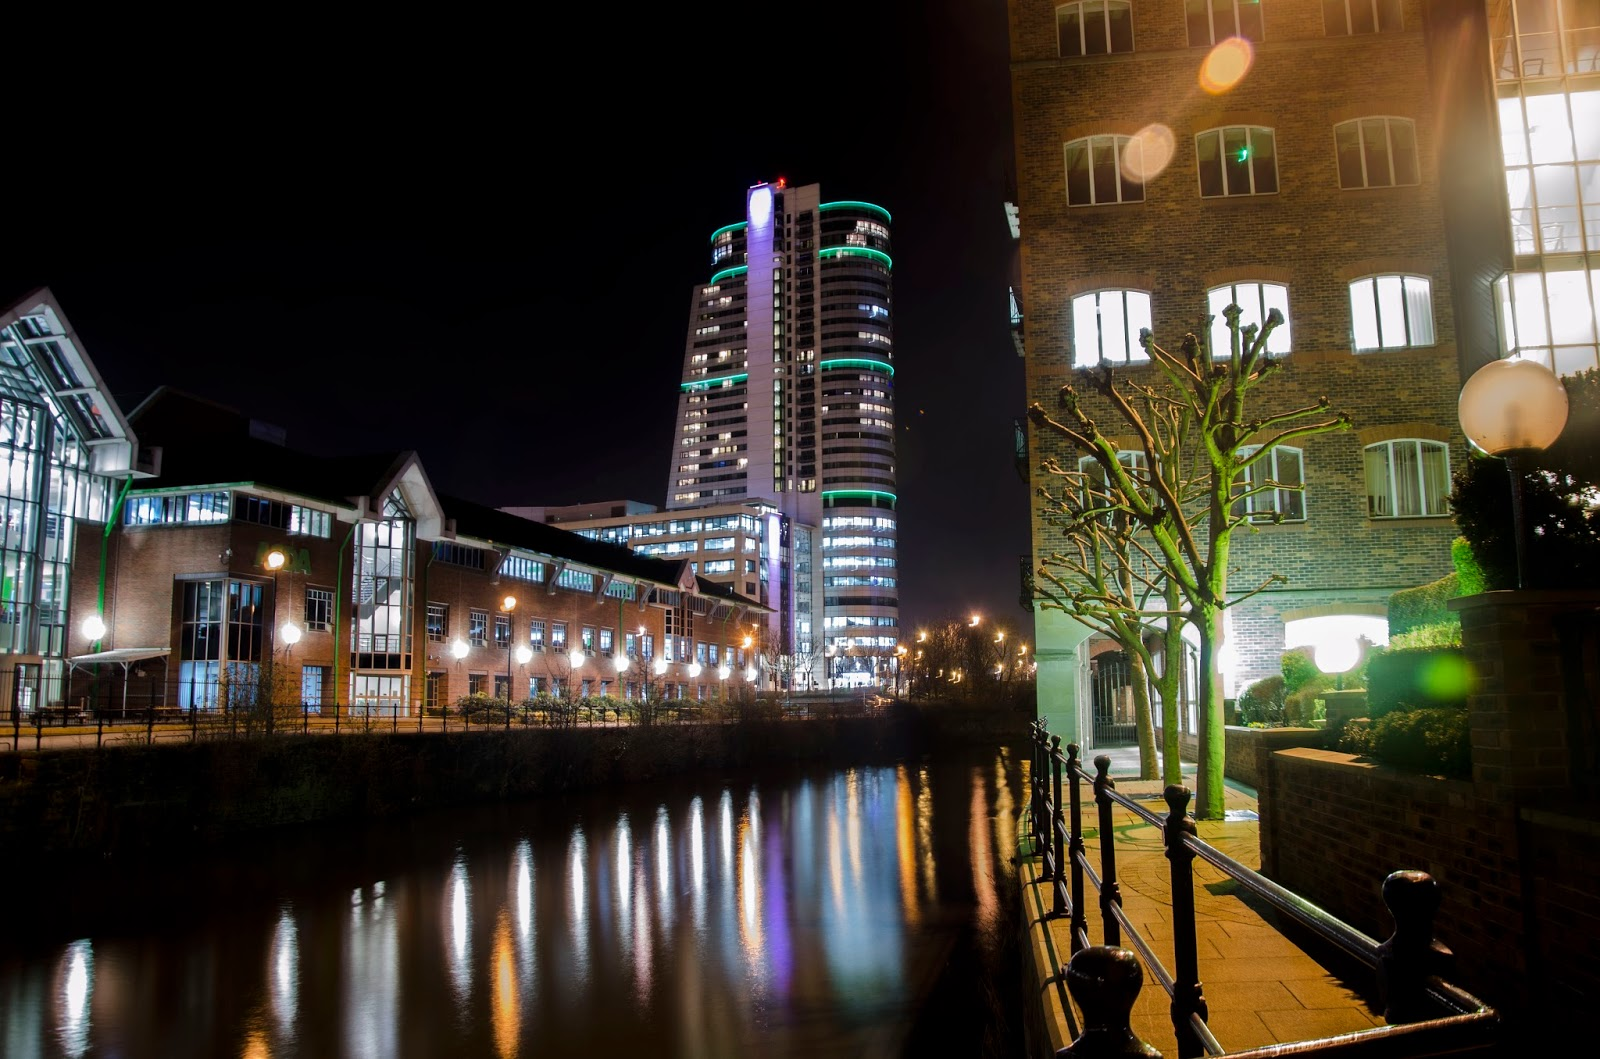 Leeds Digital Festival will be close by the river Aire